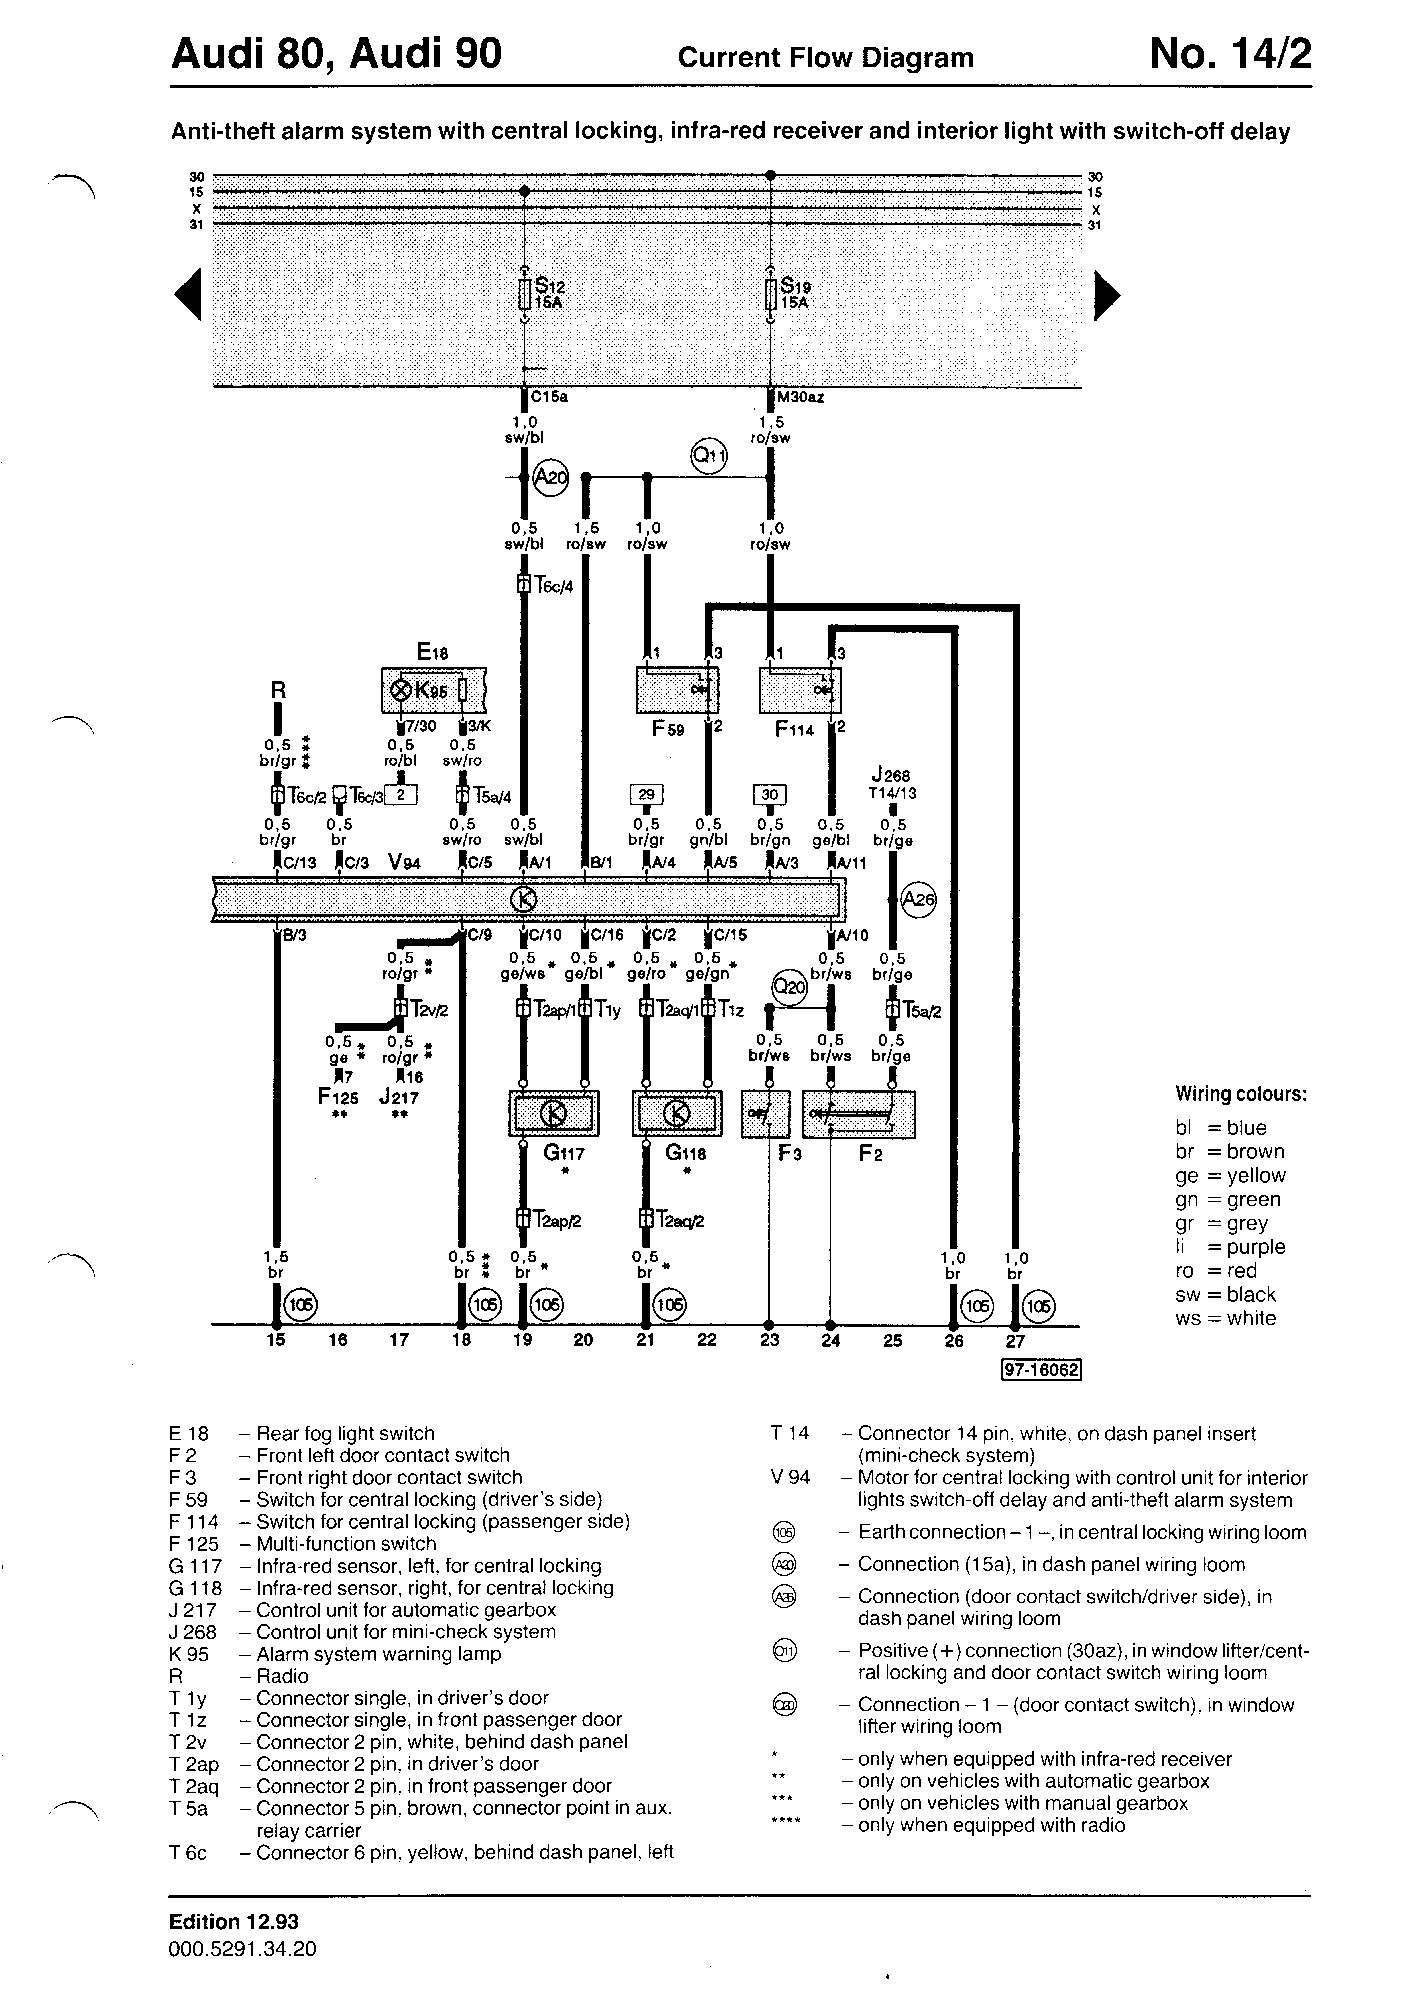 wiring diagrams component lookup rh s2 audi co uk audi 80 b4 wiring diagram 98 Audi A4 Fuse Diagram